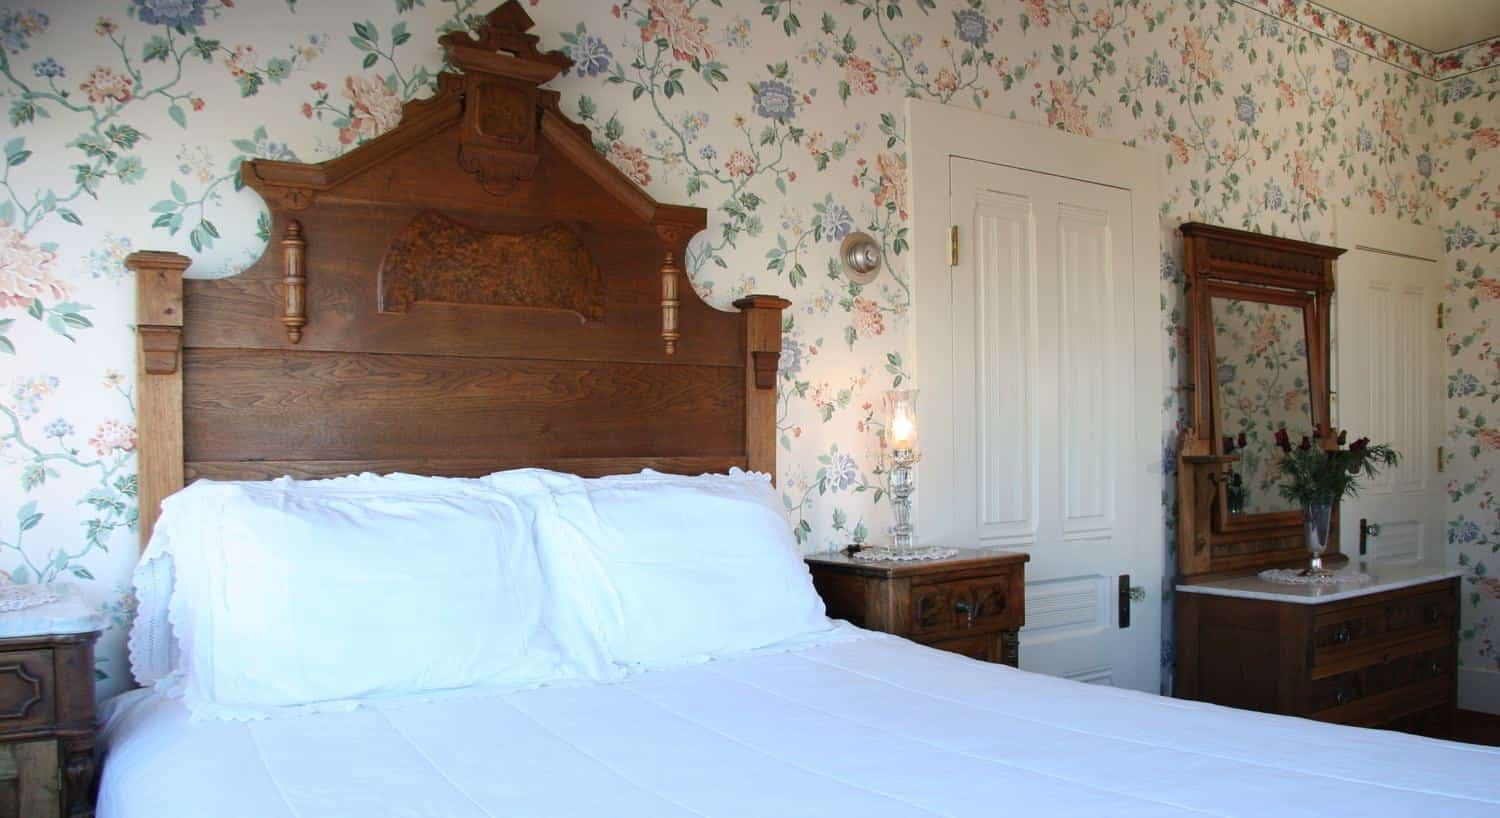 Cottage guest room with pastel floral walls, tall, wooden carved headboard, nightstands and dresser with mirror